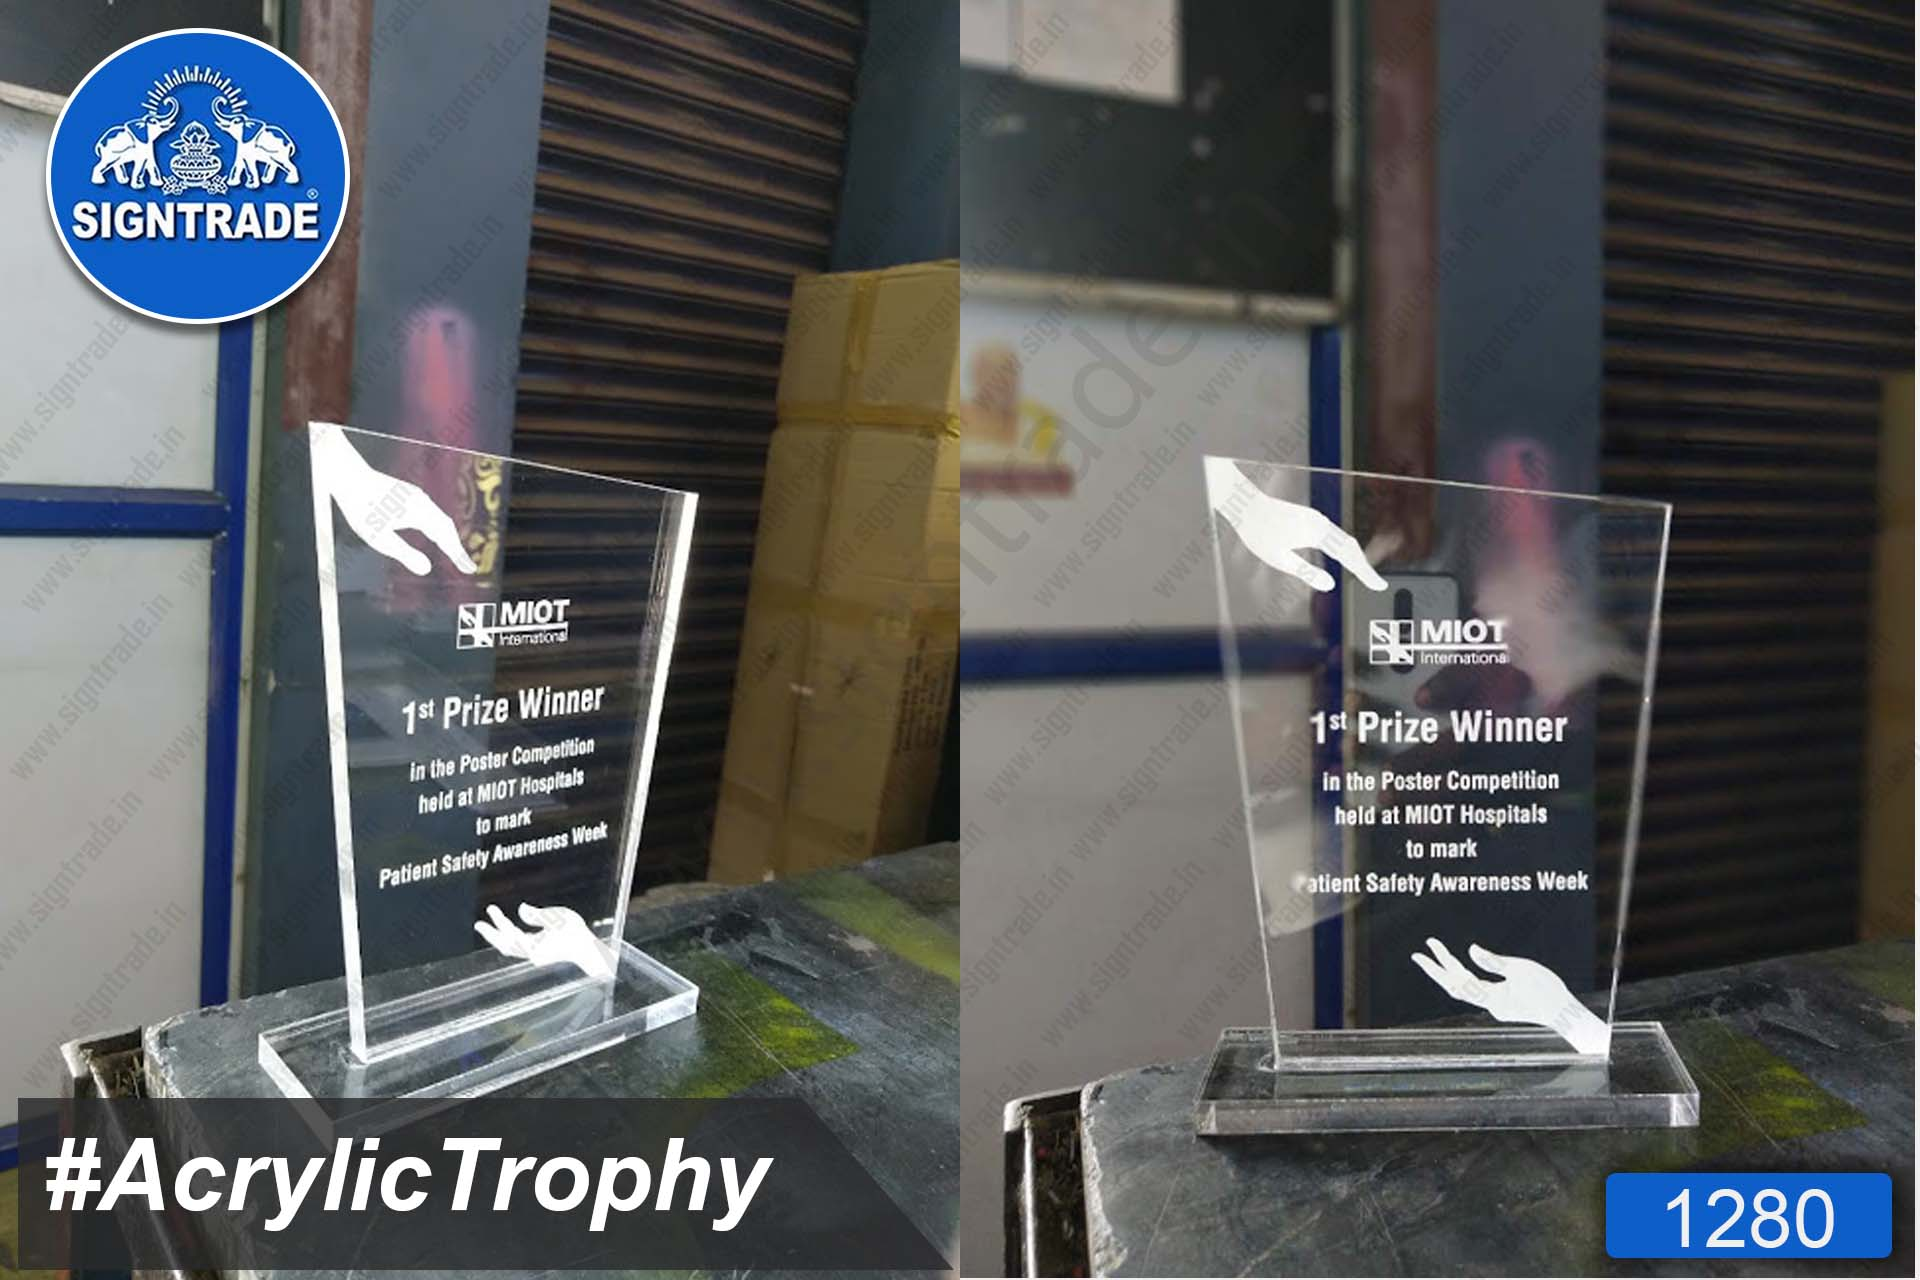 Acrylic Trophy (MIOT)